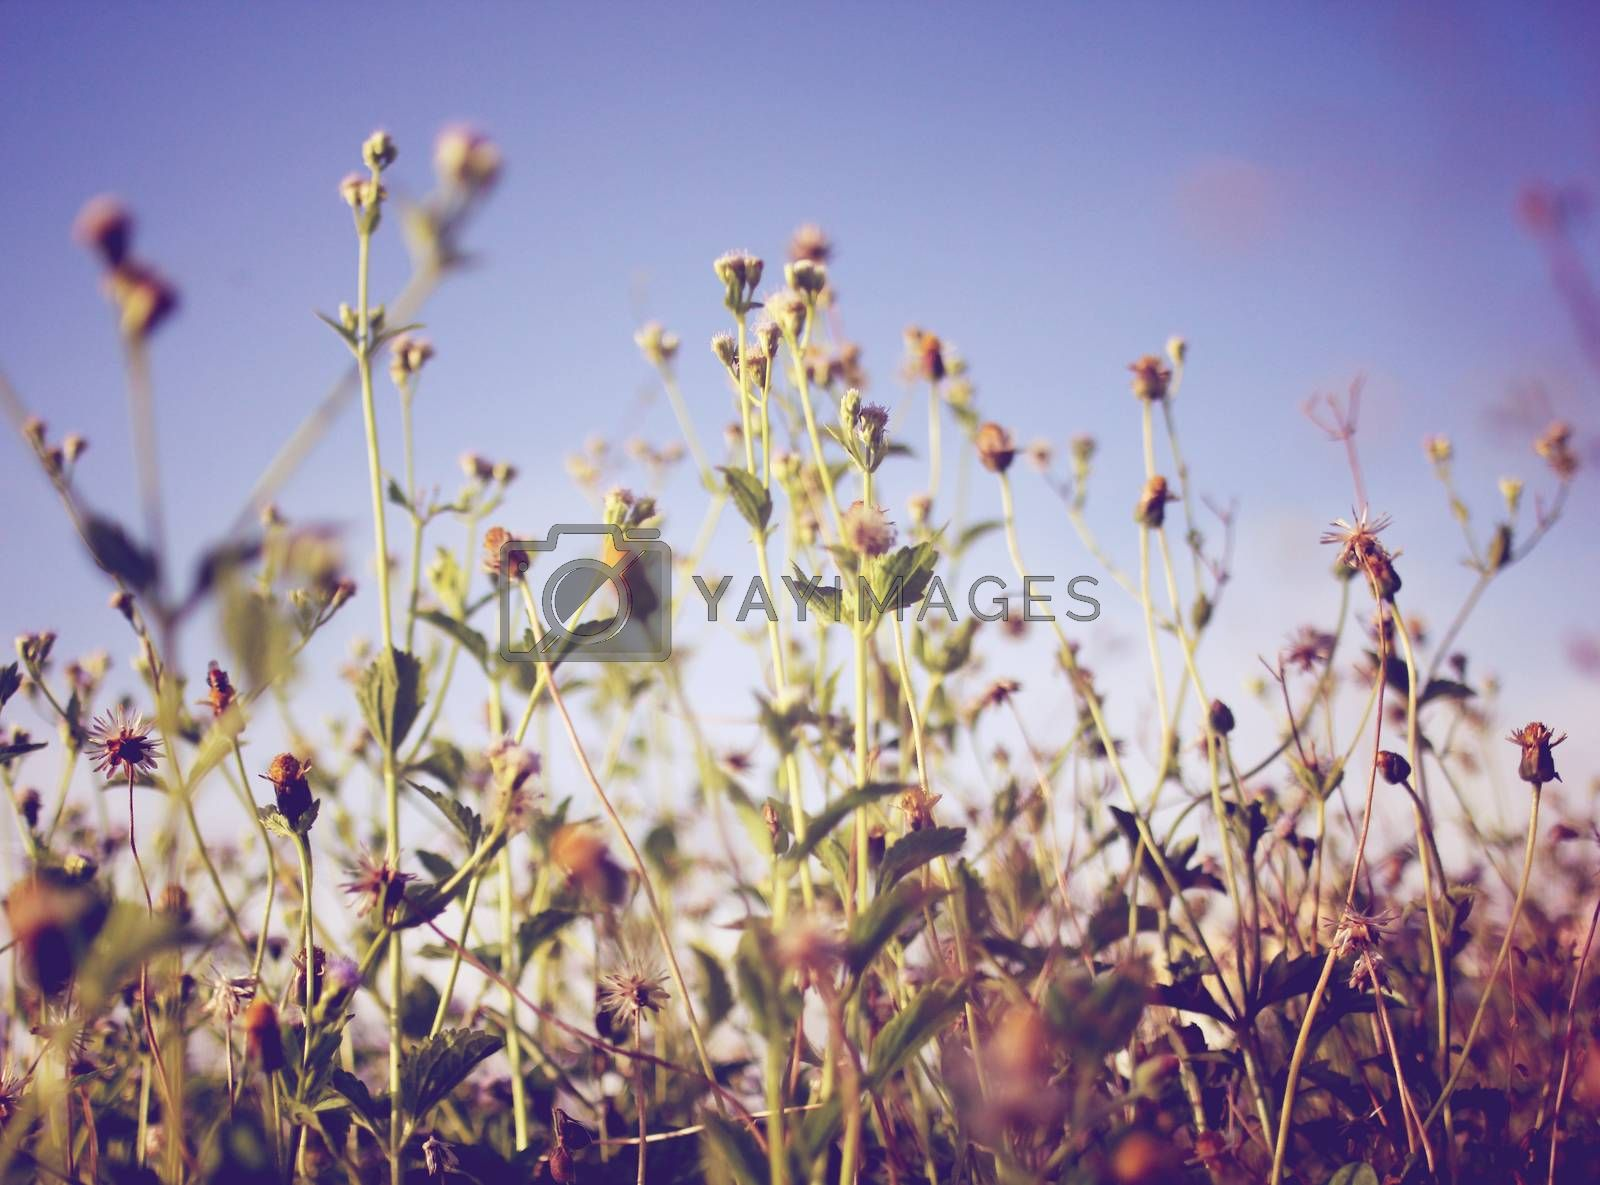 Dry meadow flowers and blue sky with retro filter effect